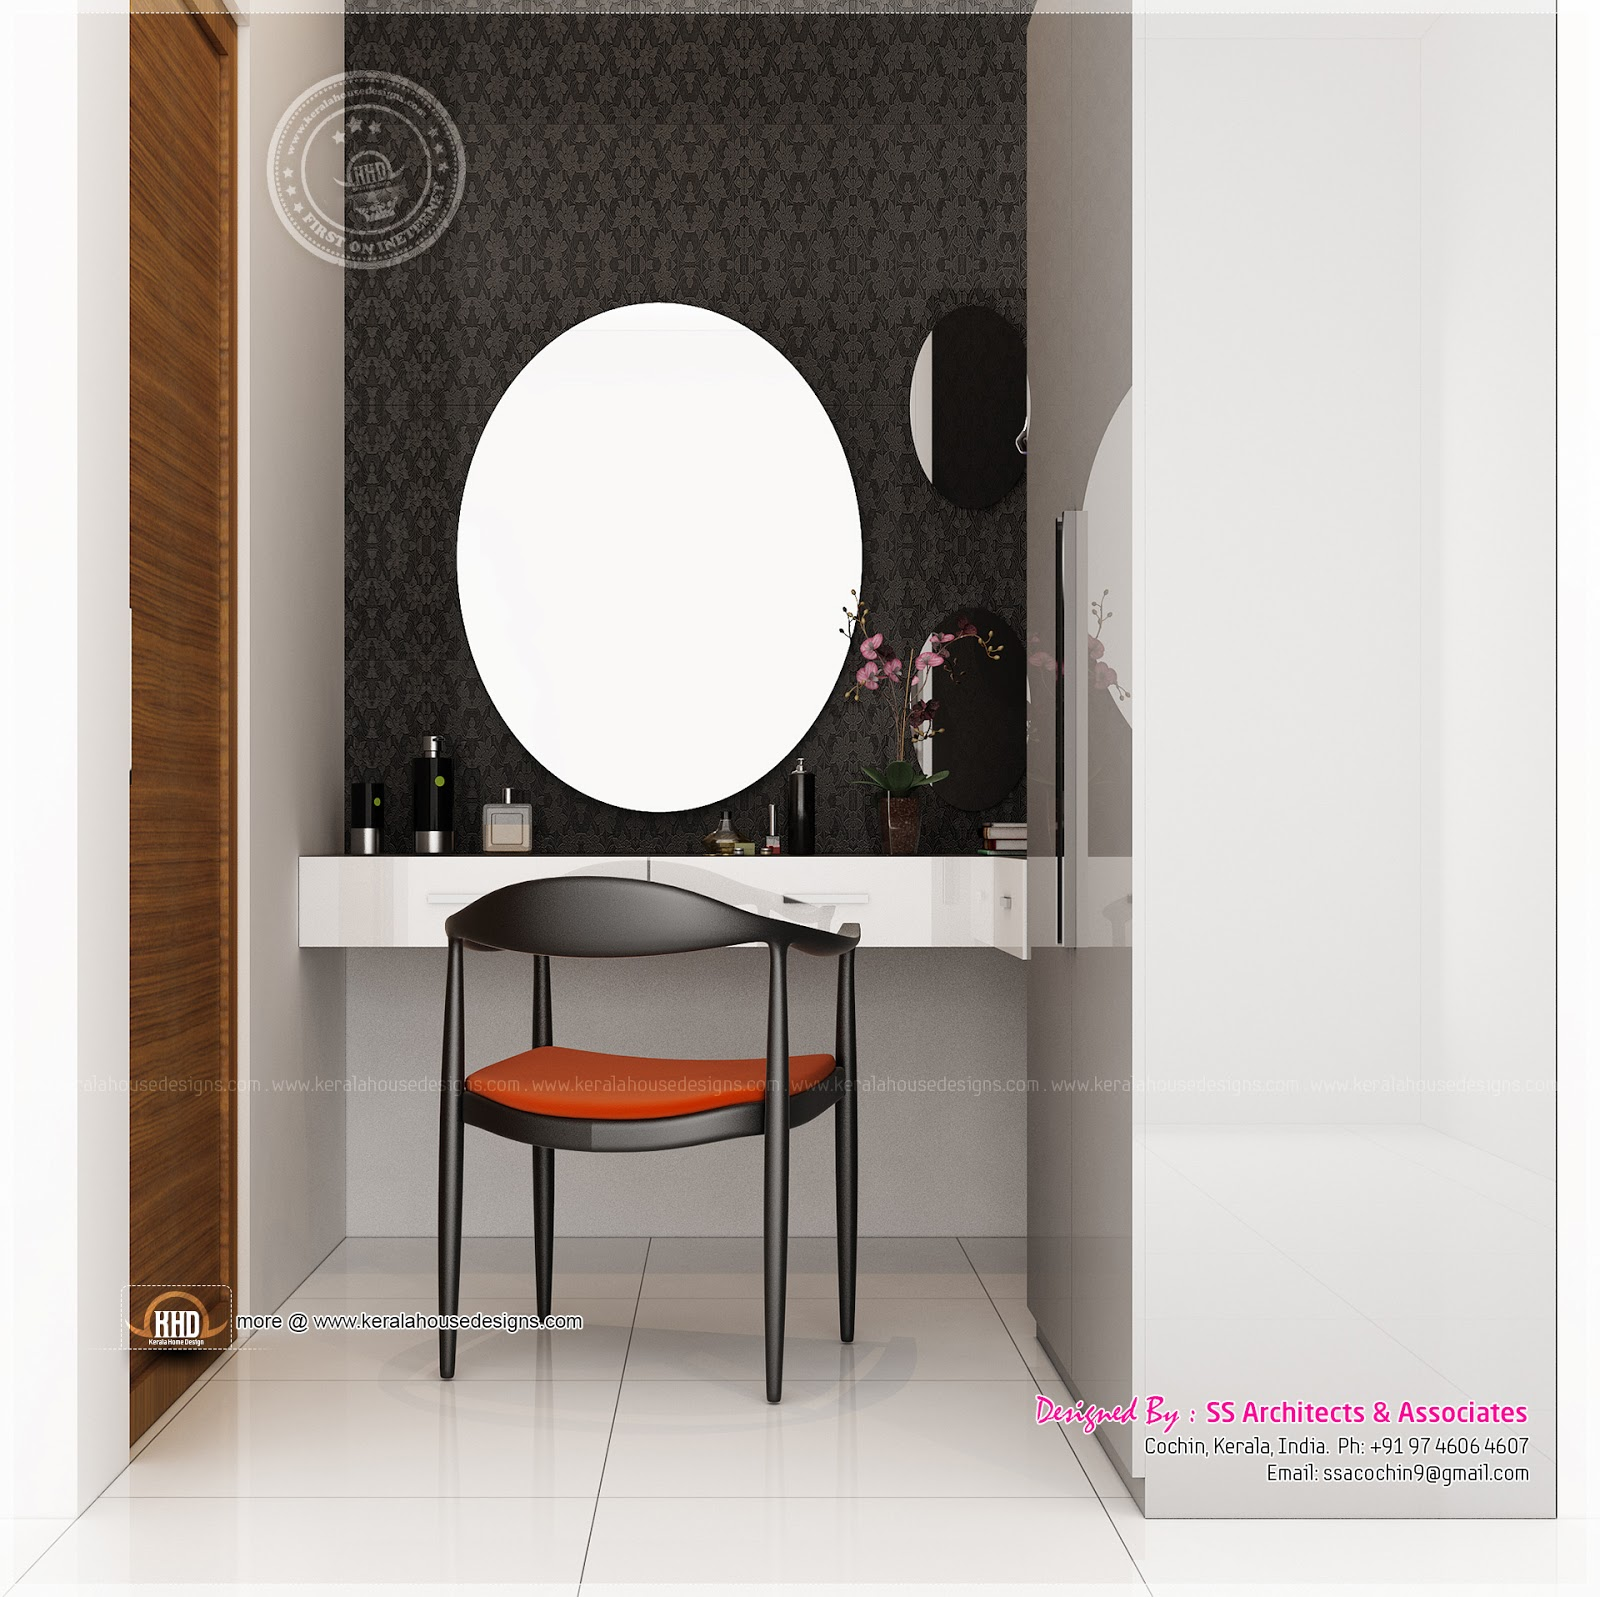 Dressing table designs - Fine Luxurious Dressing Table Designs Concerning Inspiration Article